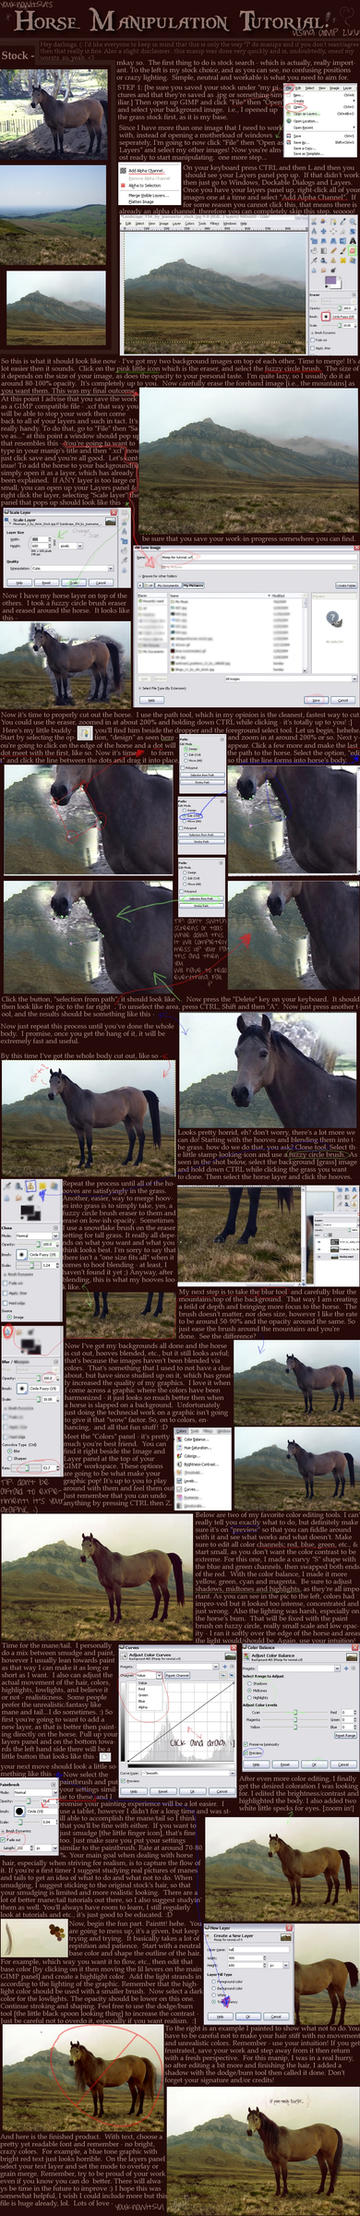 Horse Manipulation Tutorial. by youknowit561